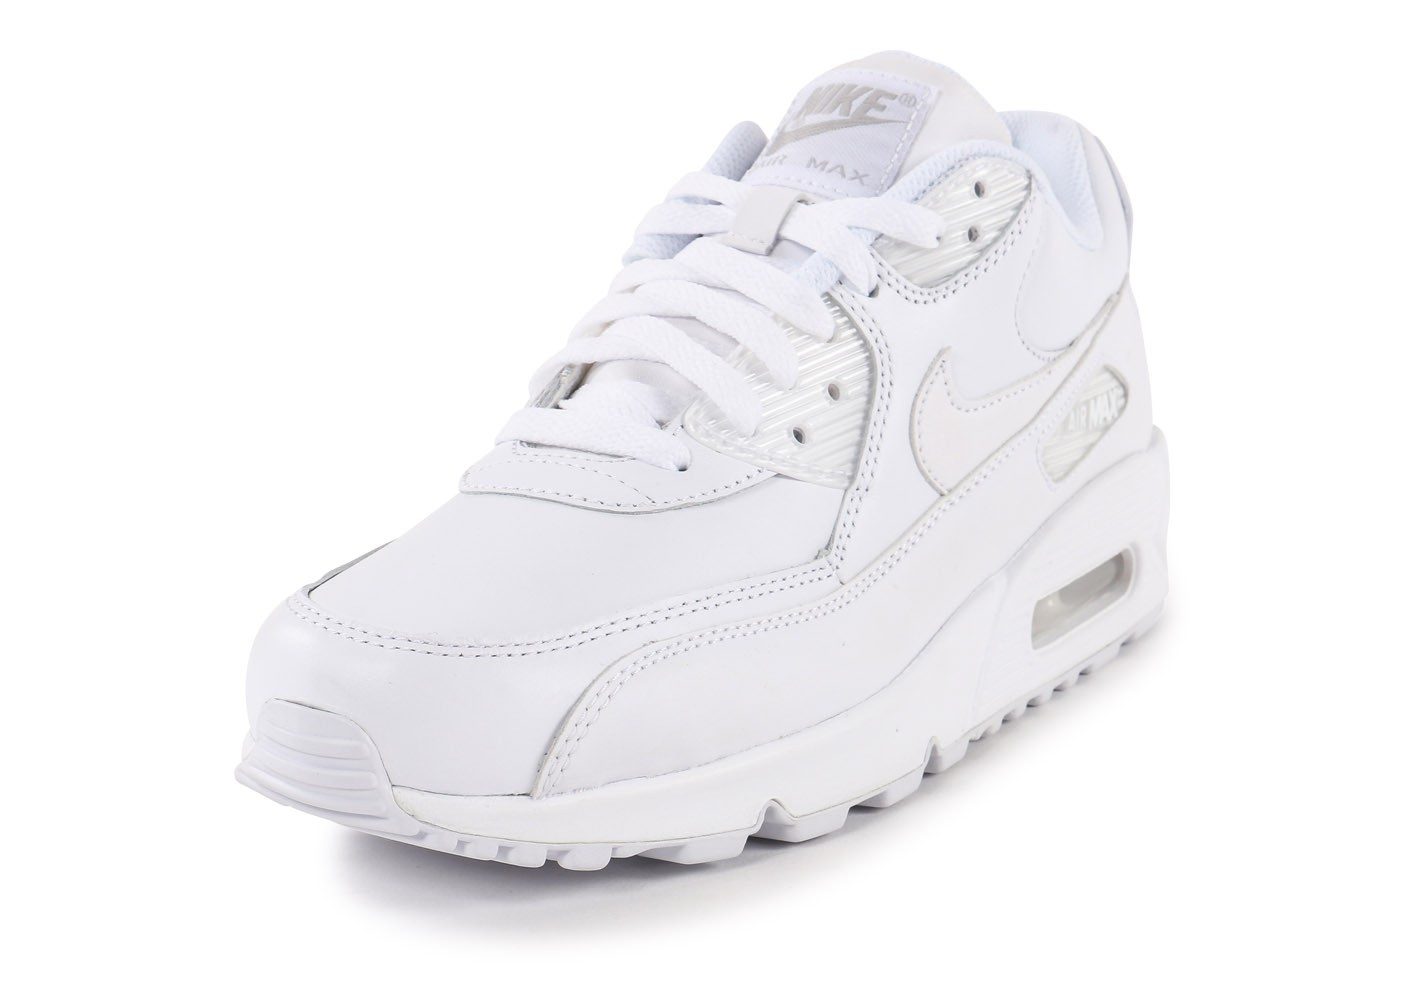 Soldes > air max 90 leather blanche > en stock